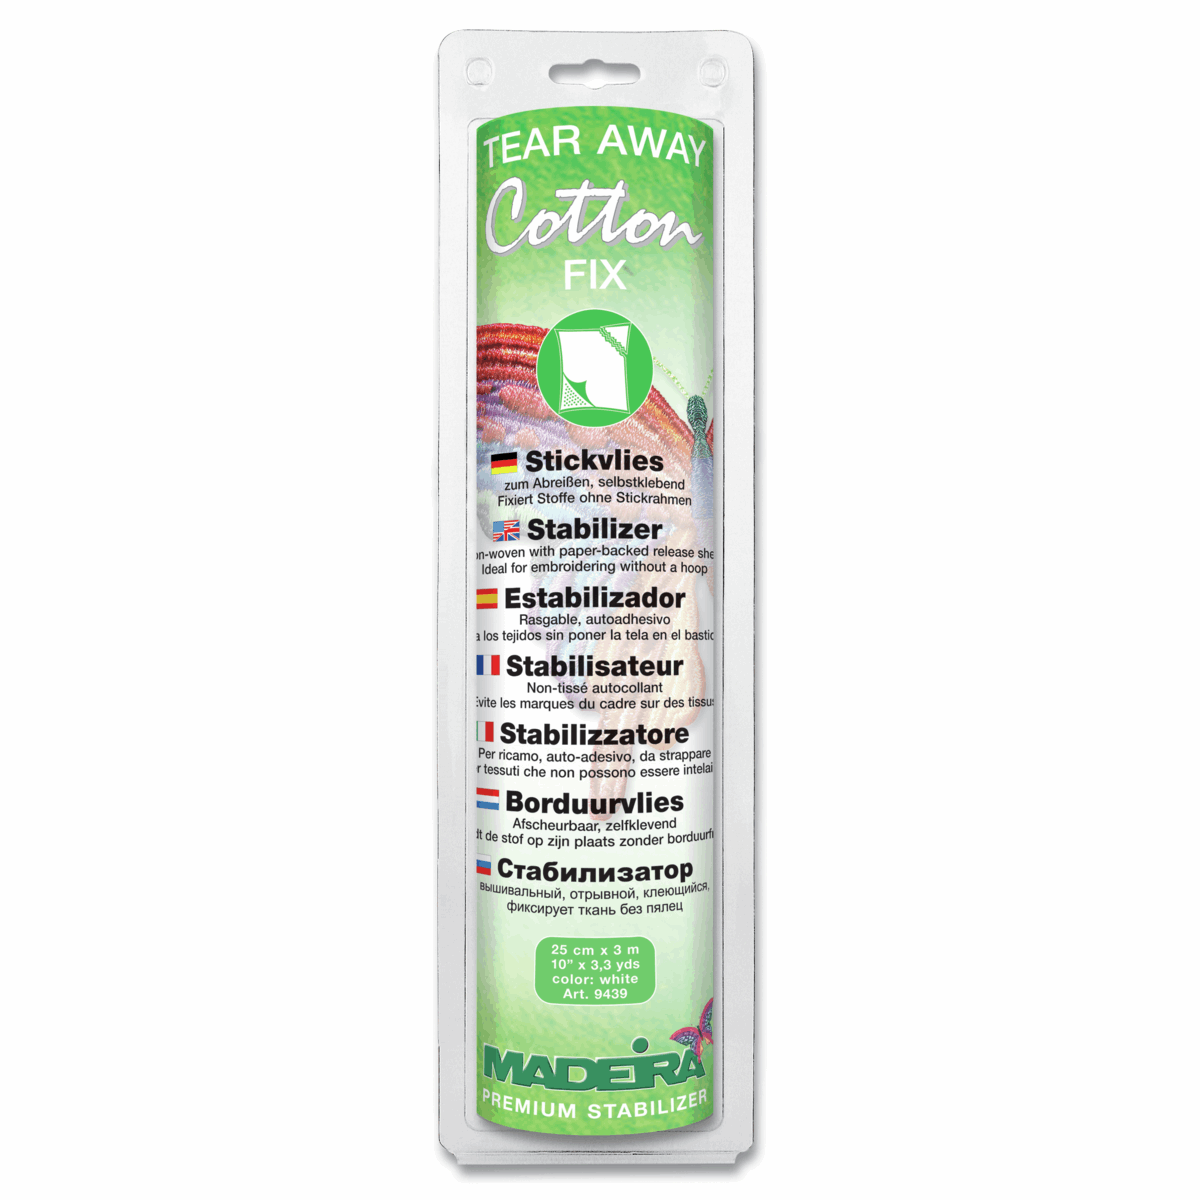 Cotton Soft White Madeira Stabilizer: Tear Away: Super Soft,Stable or Fix